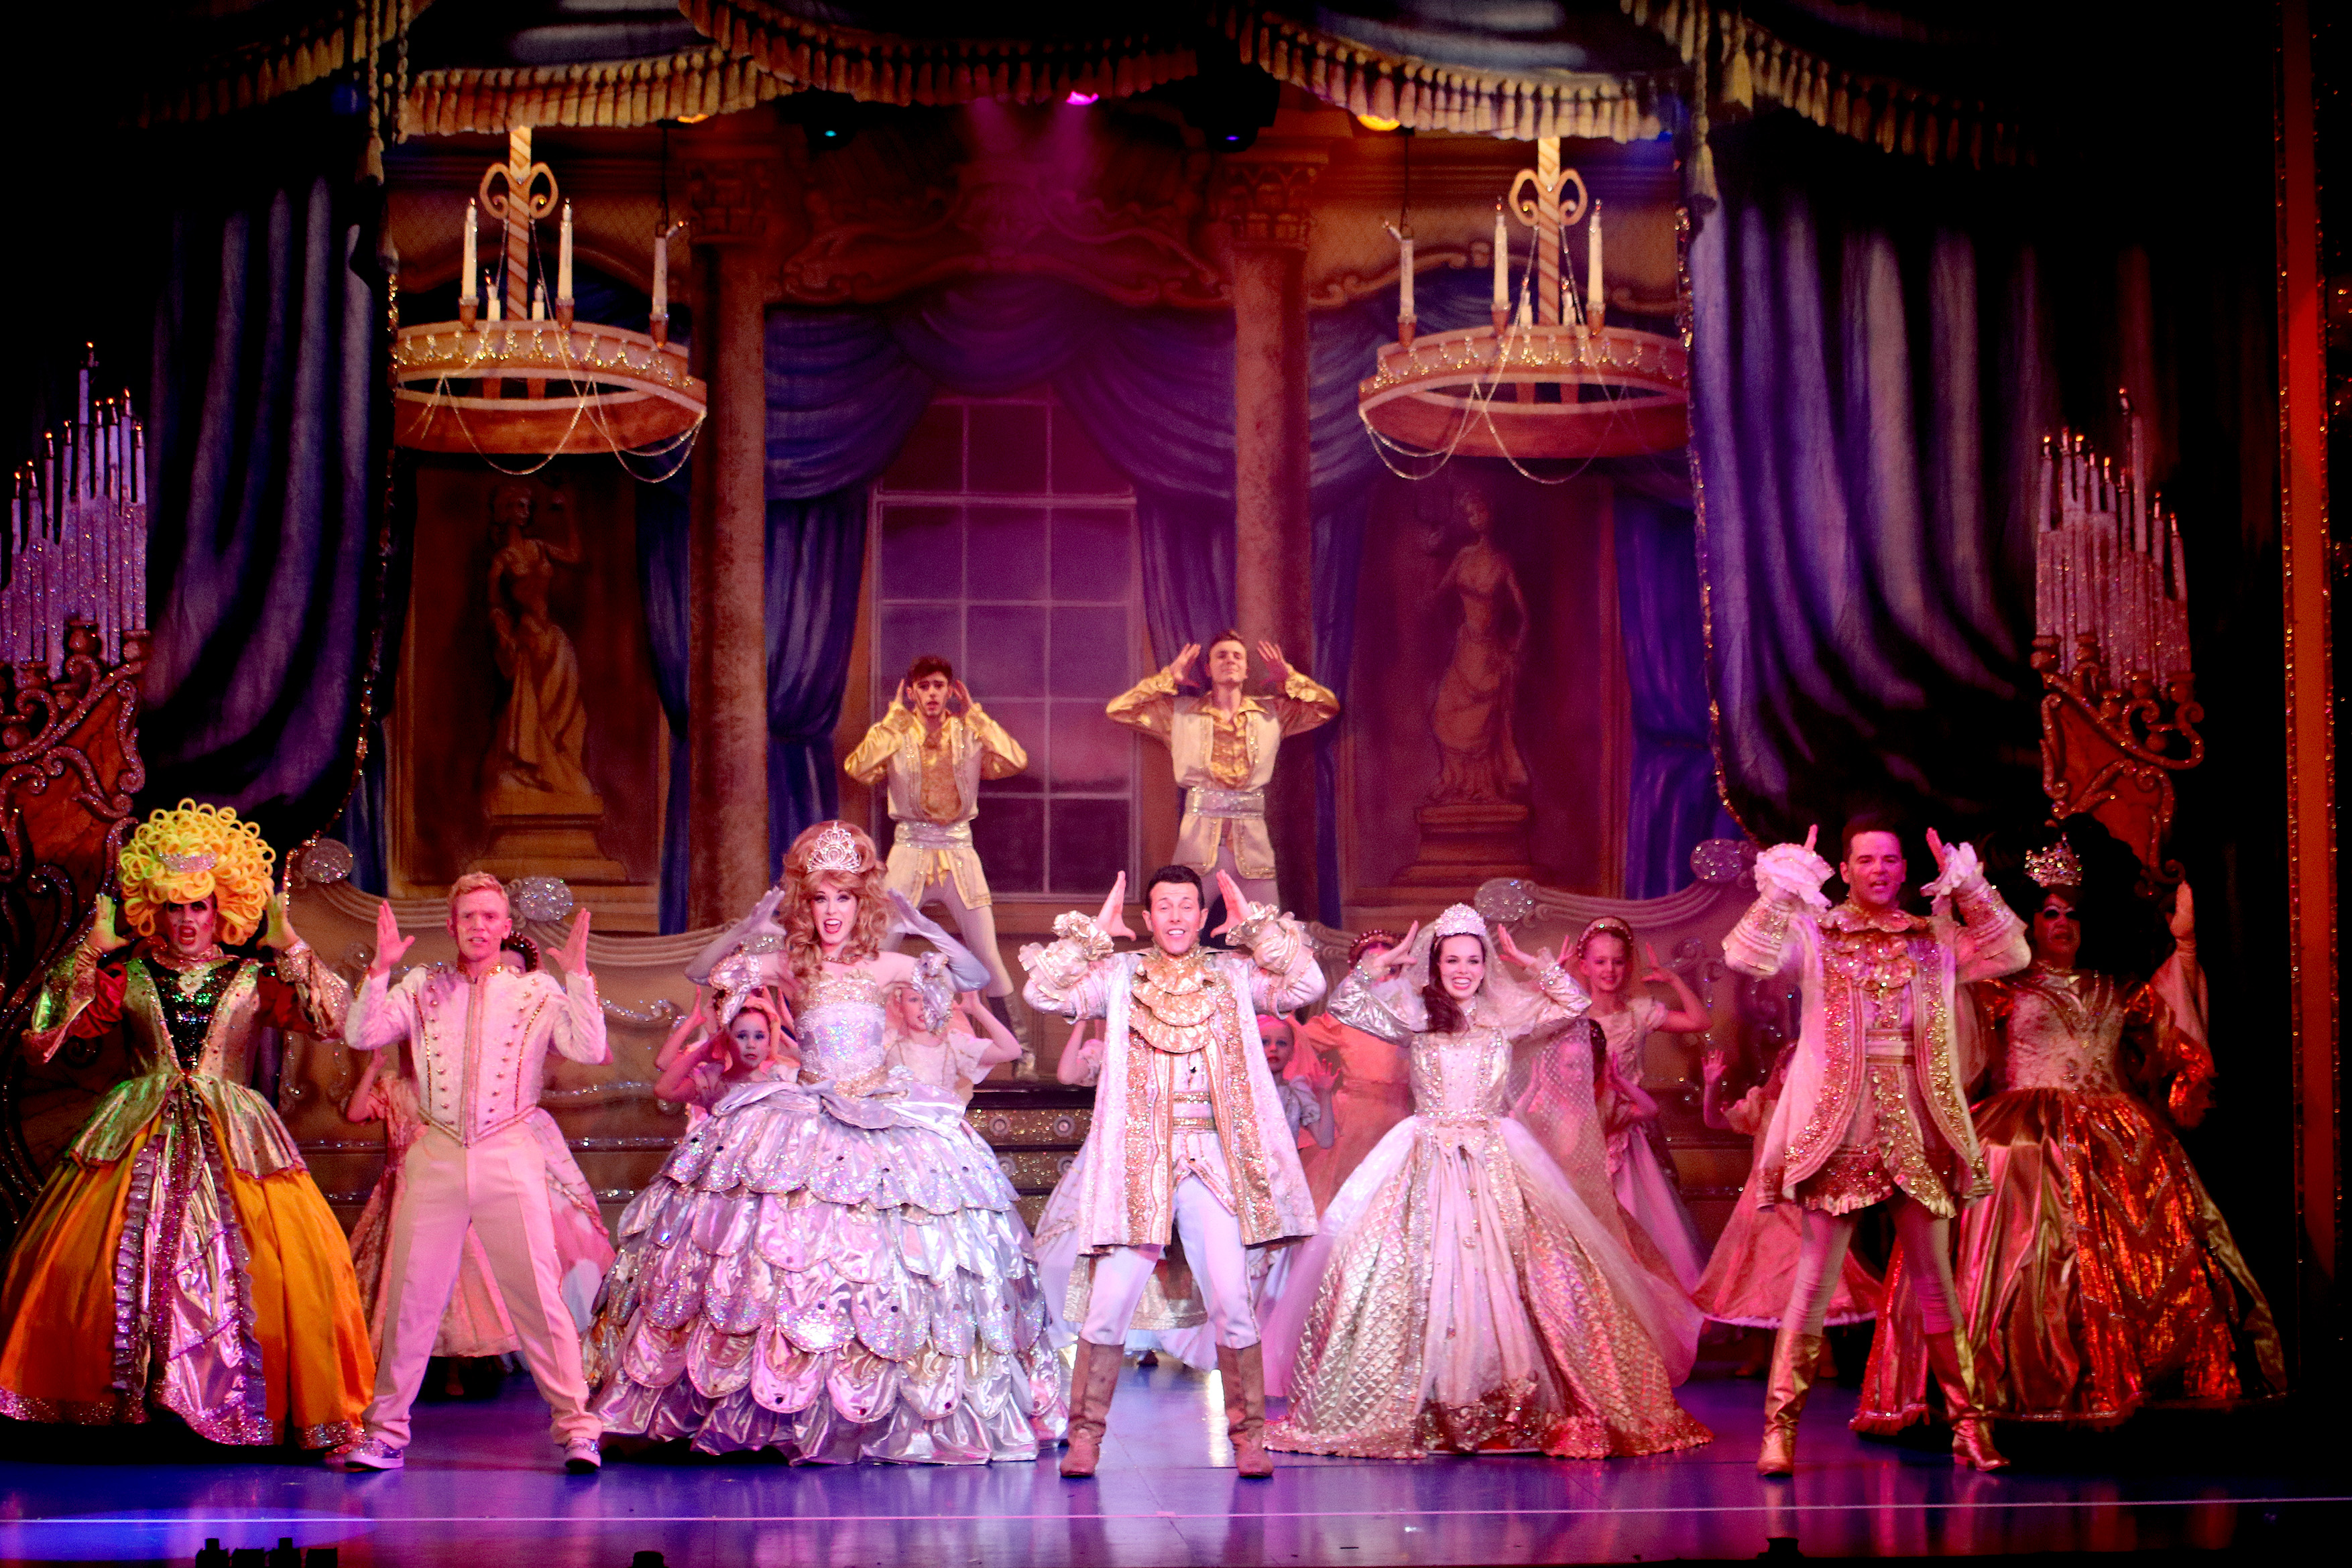 Cinderella Image 11 - Credit David Munn Photograph